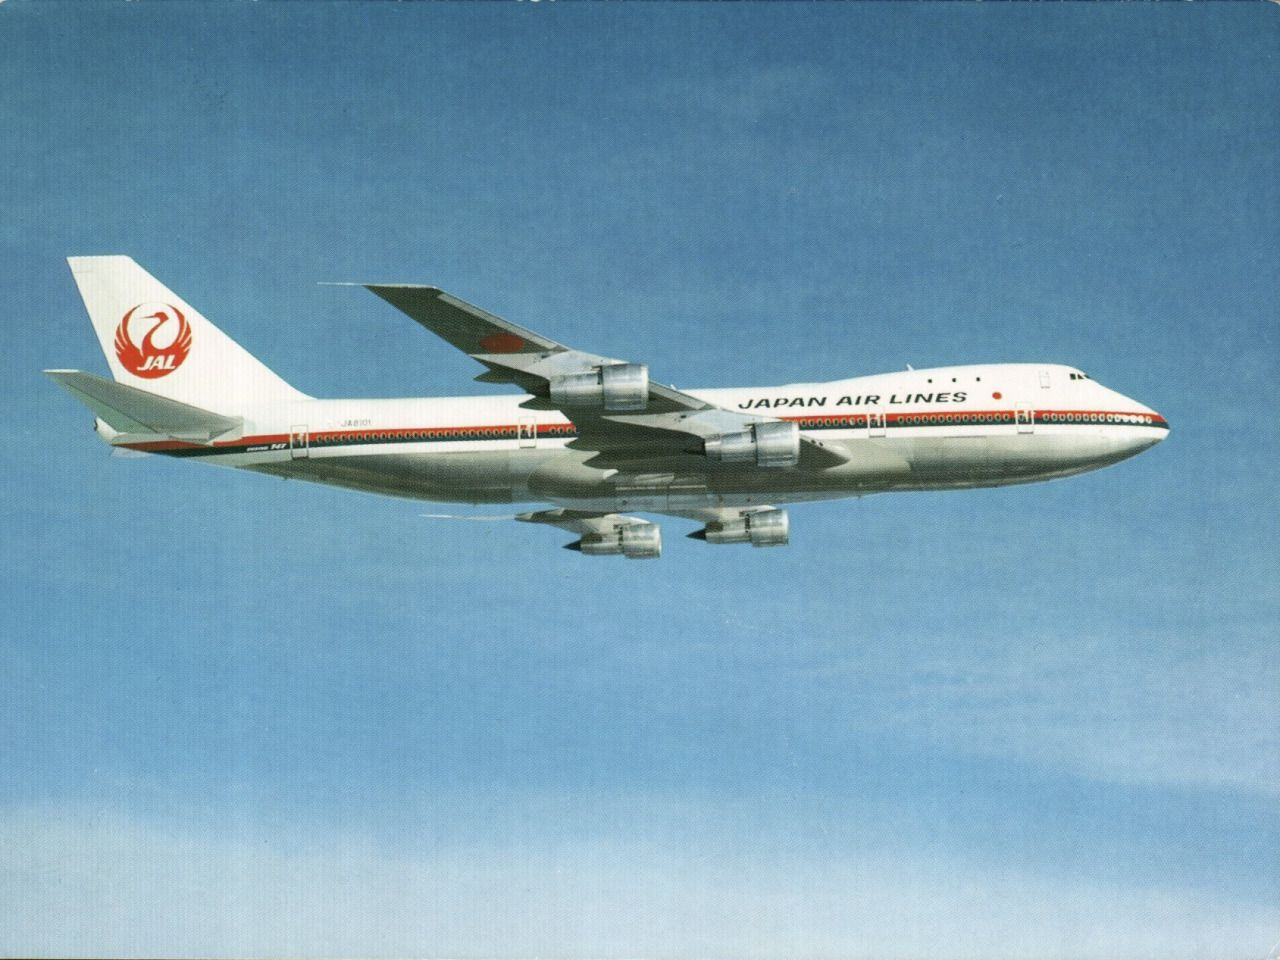 Japan Airlines Boeing 747 (airlineissued) Boeing 747